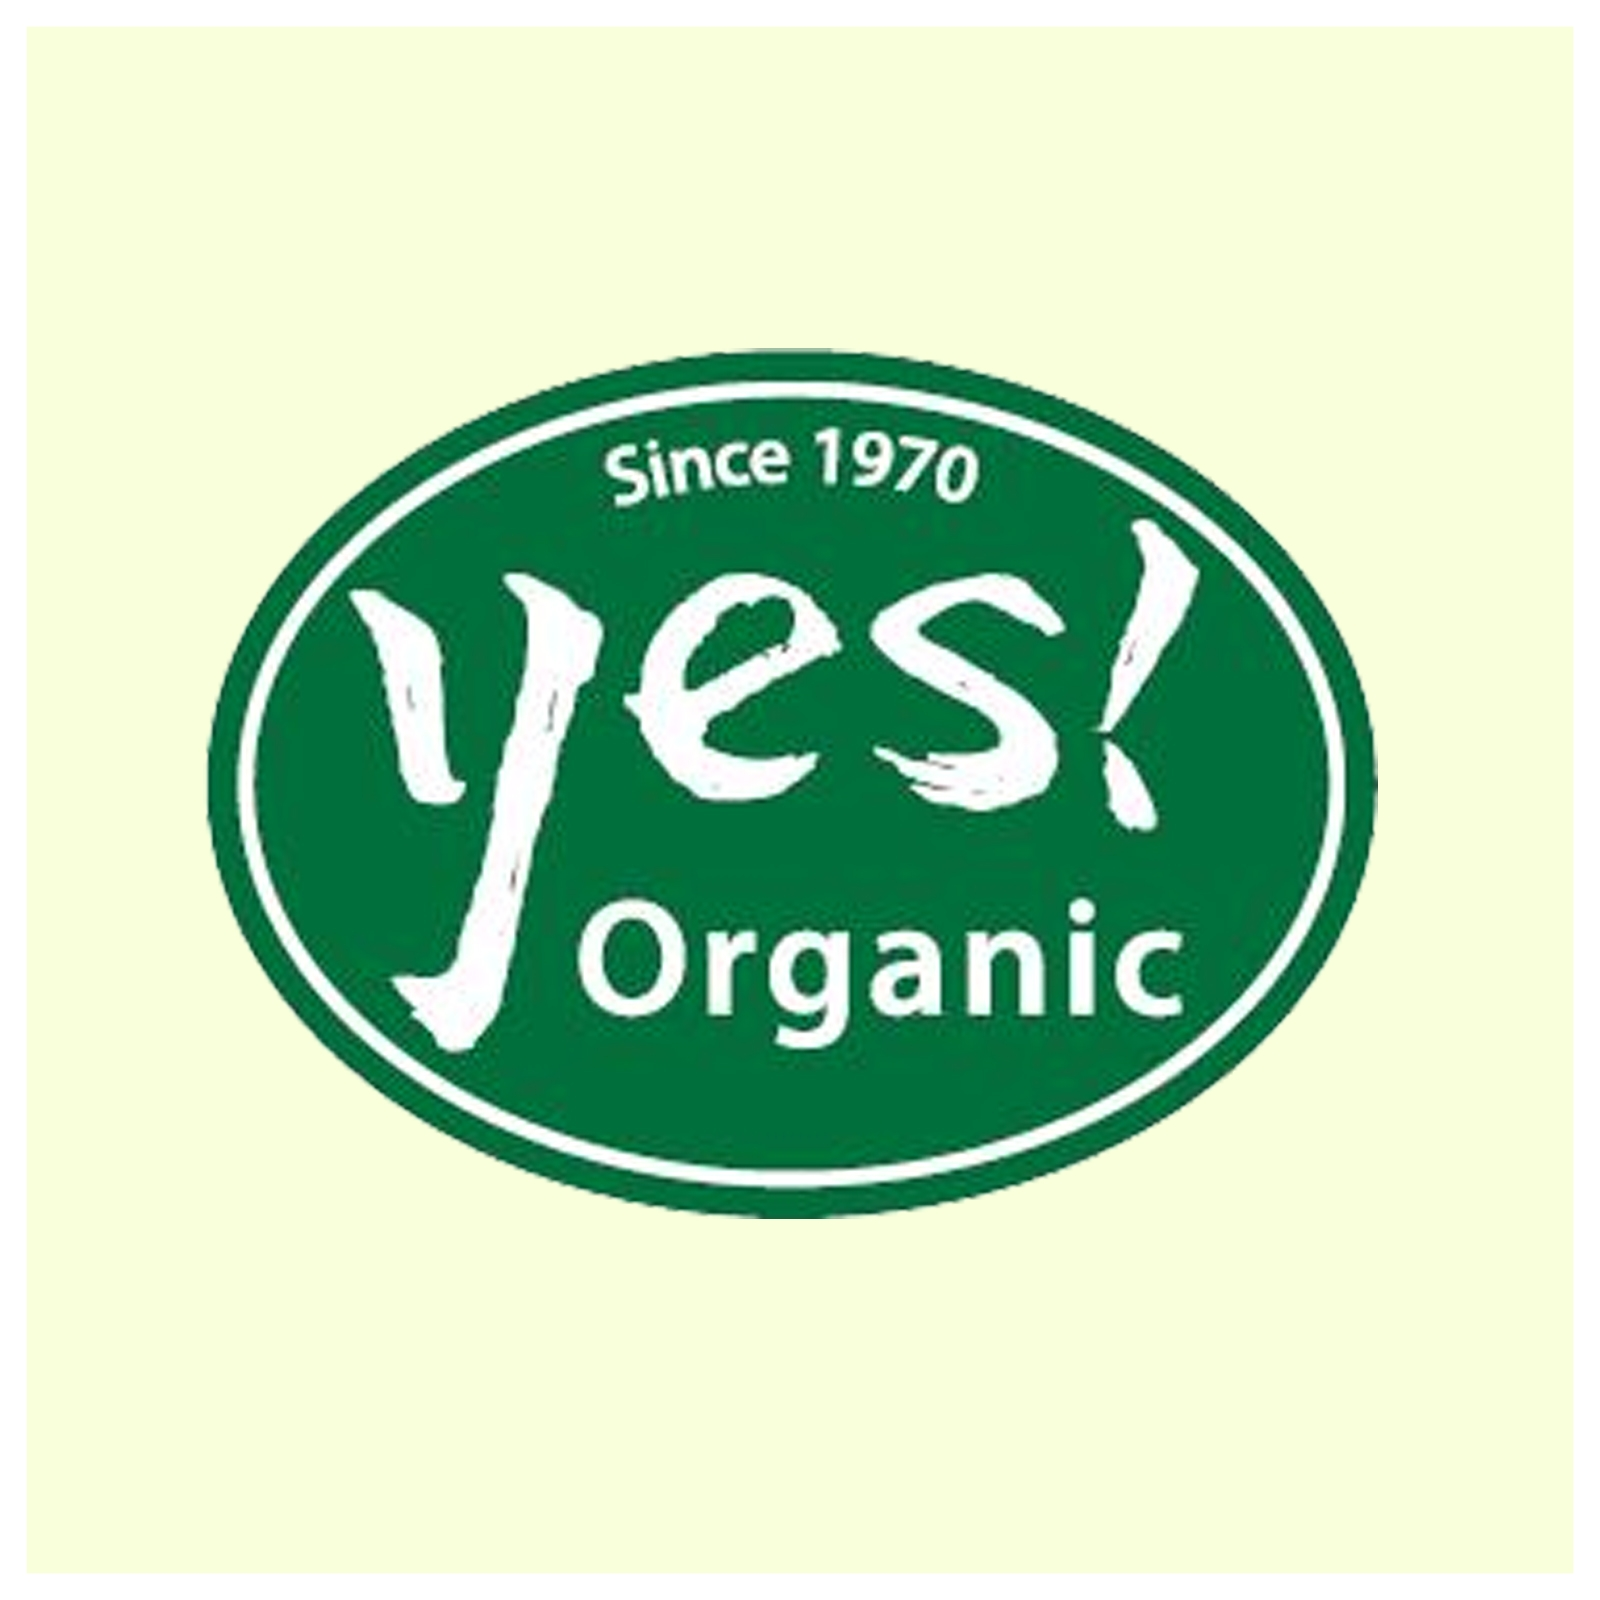 YES! ORGANIC (PETWORTH) - 4100 GEORGIA AVENUE NWWASHINGTON, DC 20011